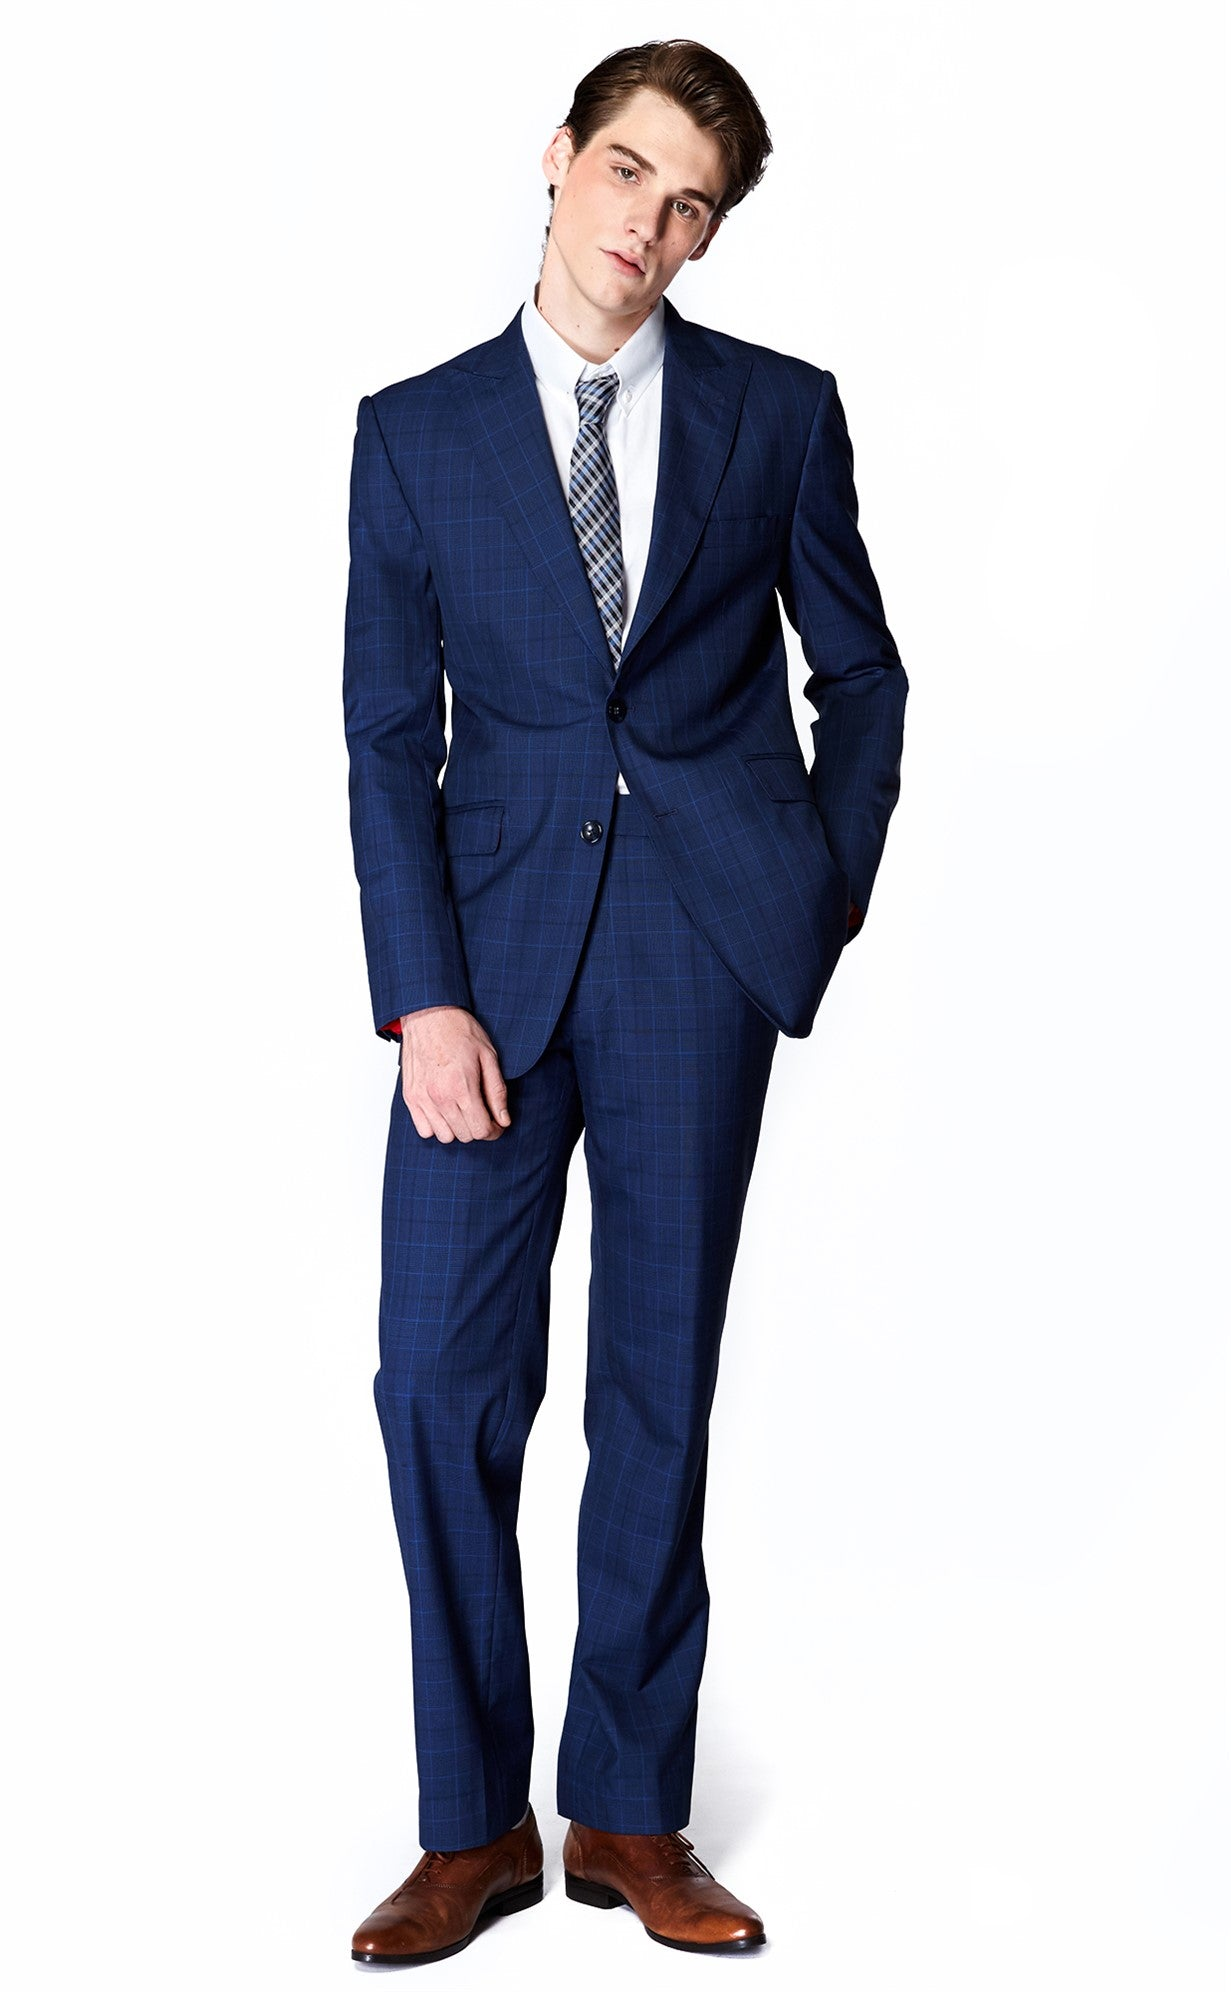 Blue Plaid Suit (Italian Wool)